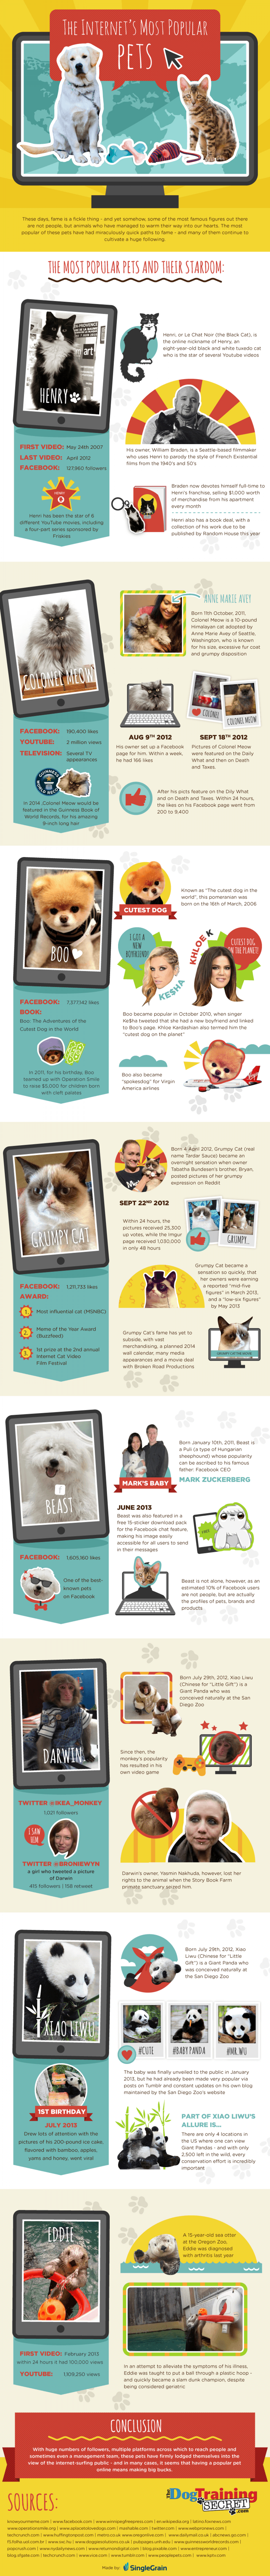 The Internet's Most Popular Pets Infographic